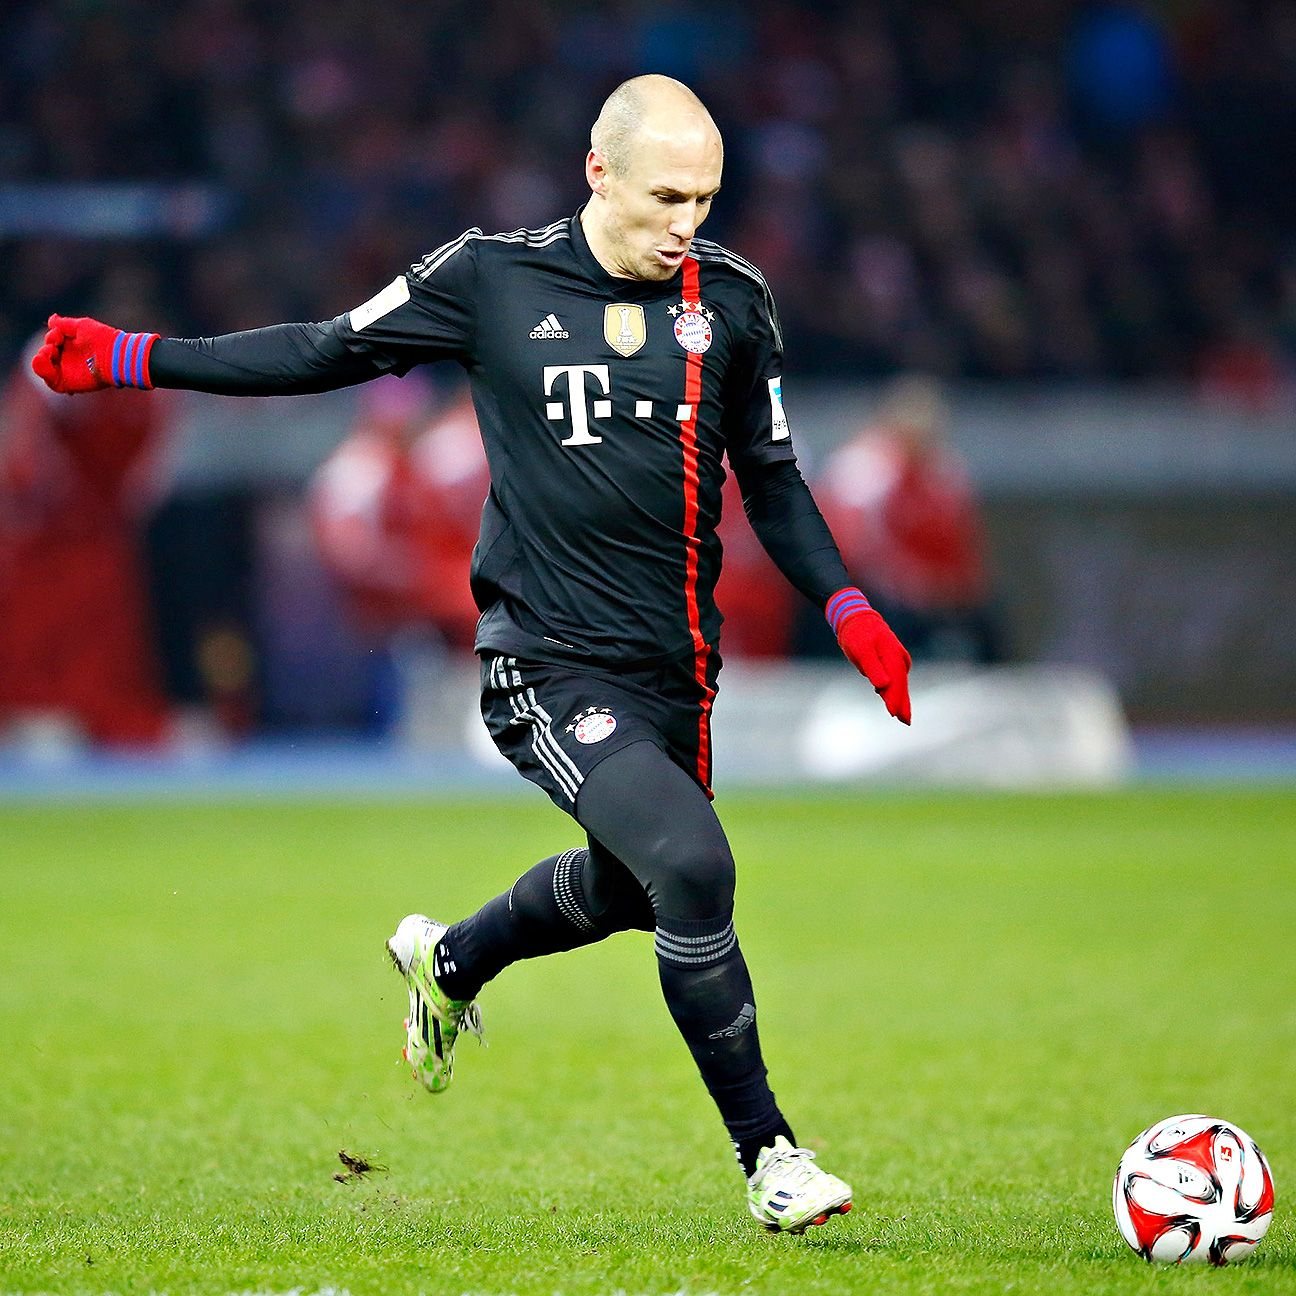 Bayern Munich have yet to be beaten in a match in the 2014-15 season during which Arjen Robben has scored.